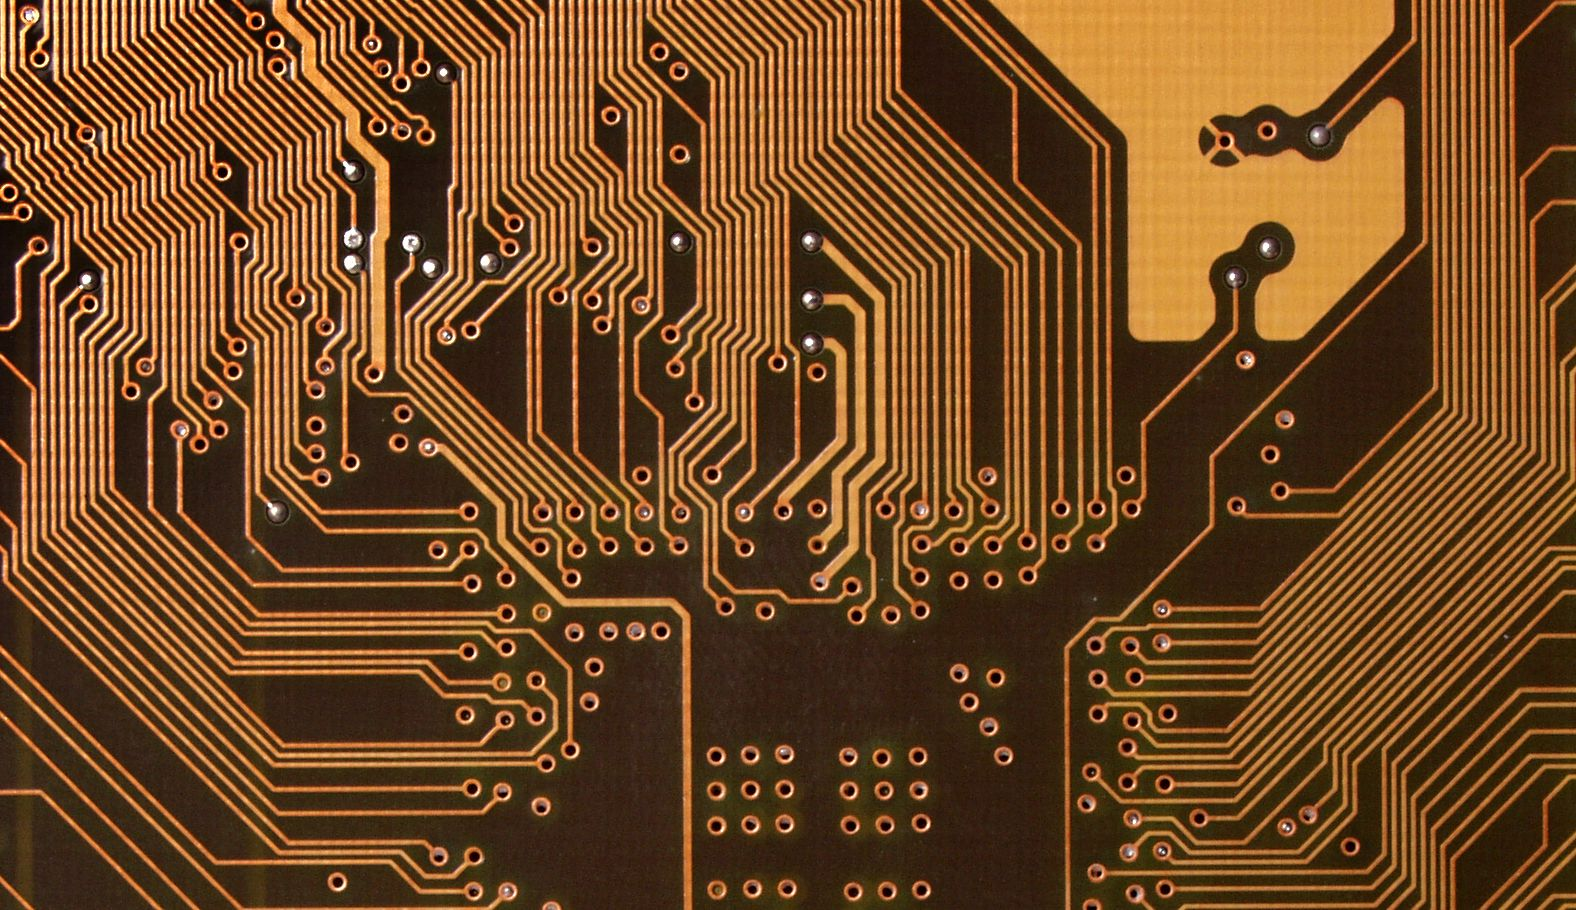 Circuit Board by mconnor, from morgueFile database